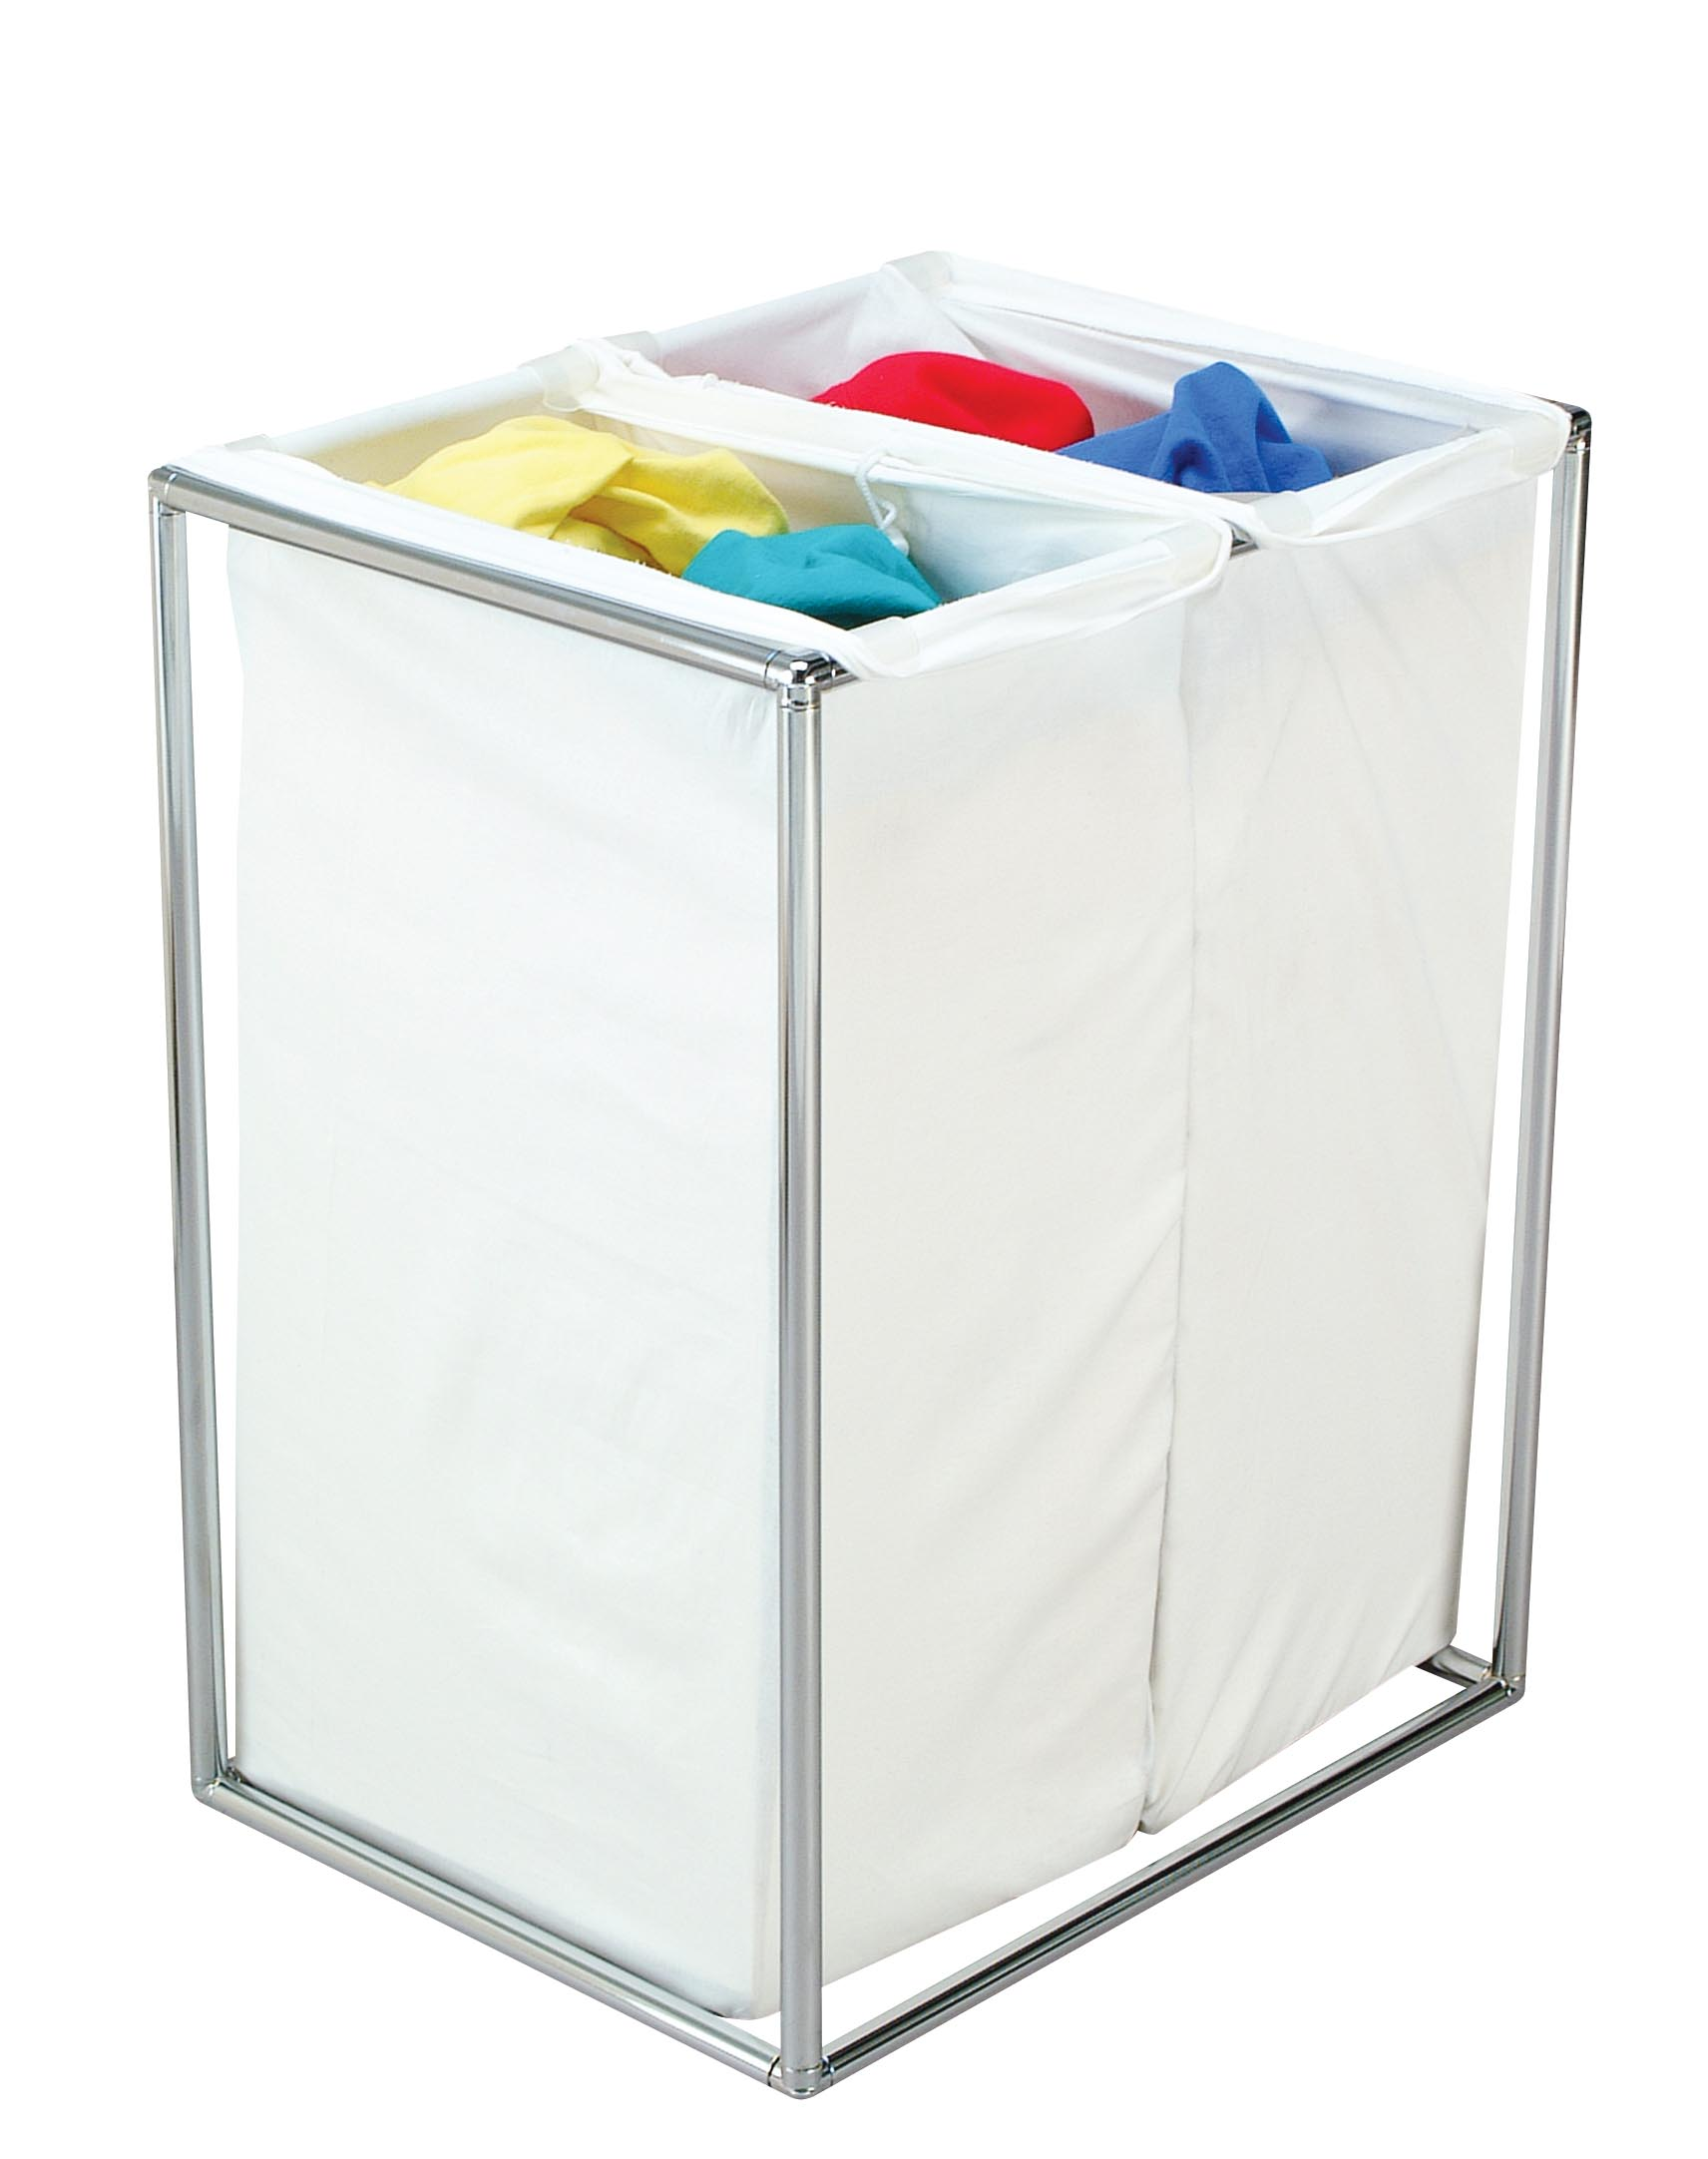 Chrome Laundry Basket Hamper The Bag Stand Company